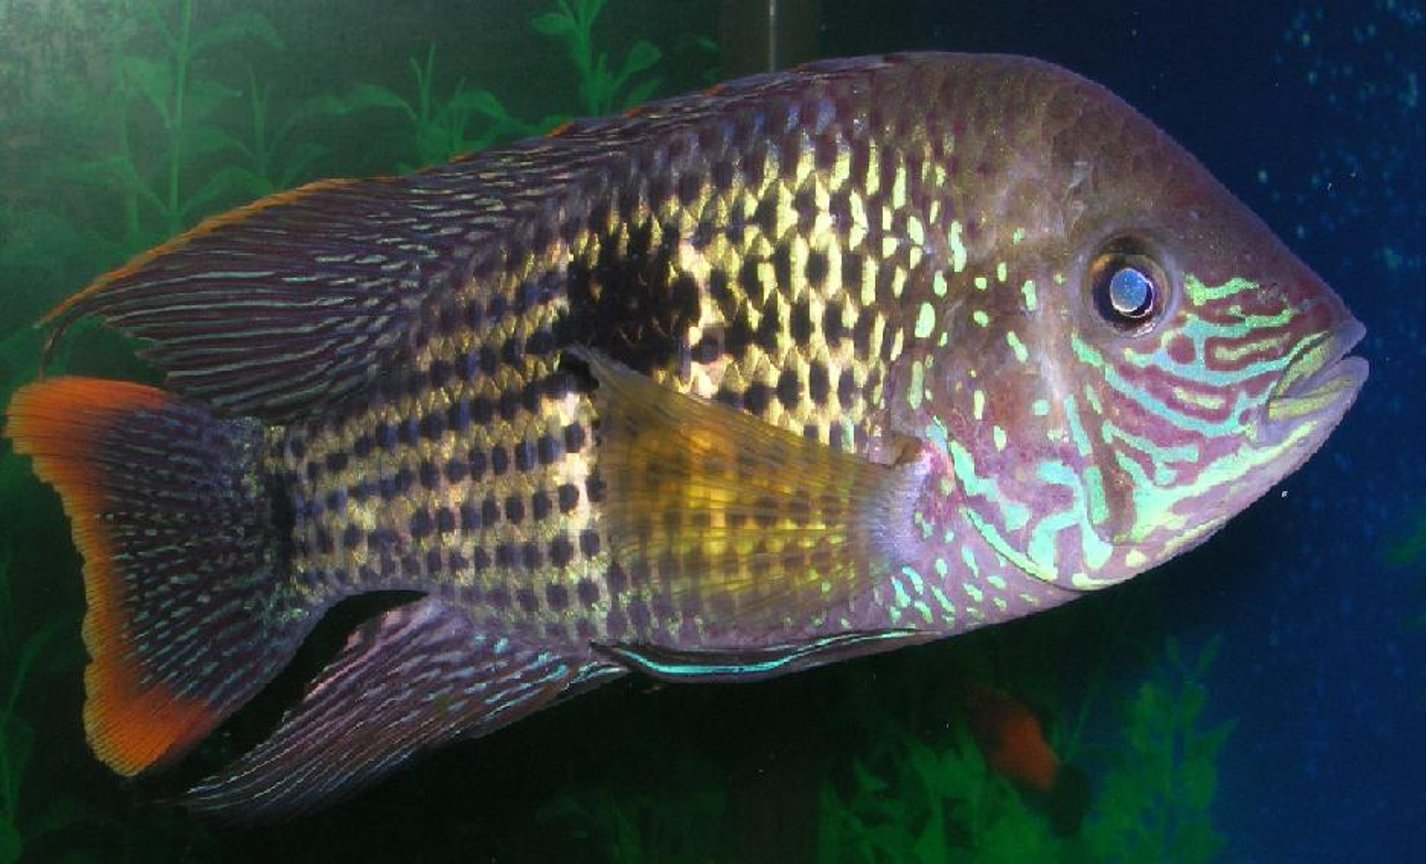 freshwater fish - aequidens rivulatus - green terror stocking in 55 gallons tank - Another pic of my green terror...This fish is a great cichlid to have....